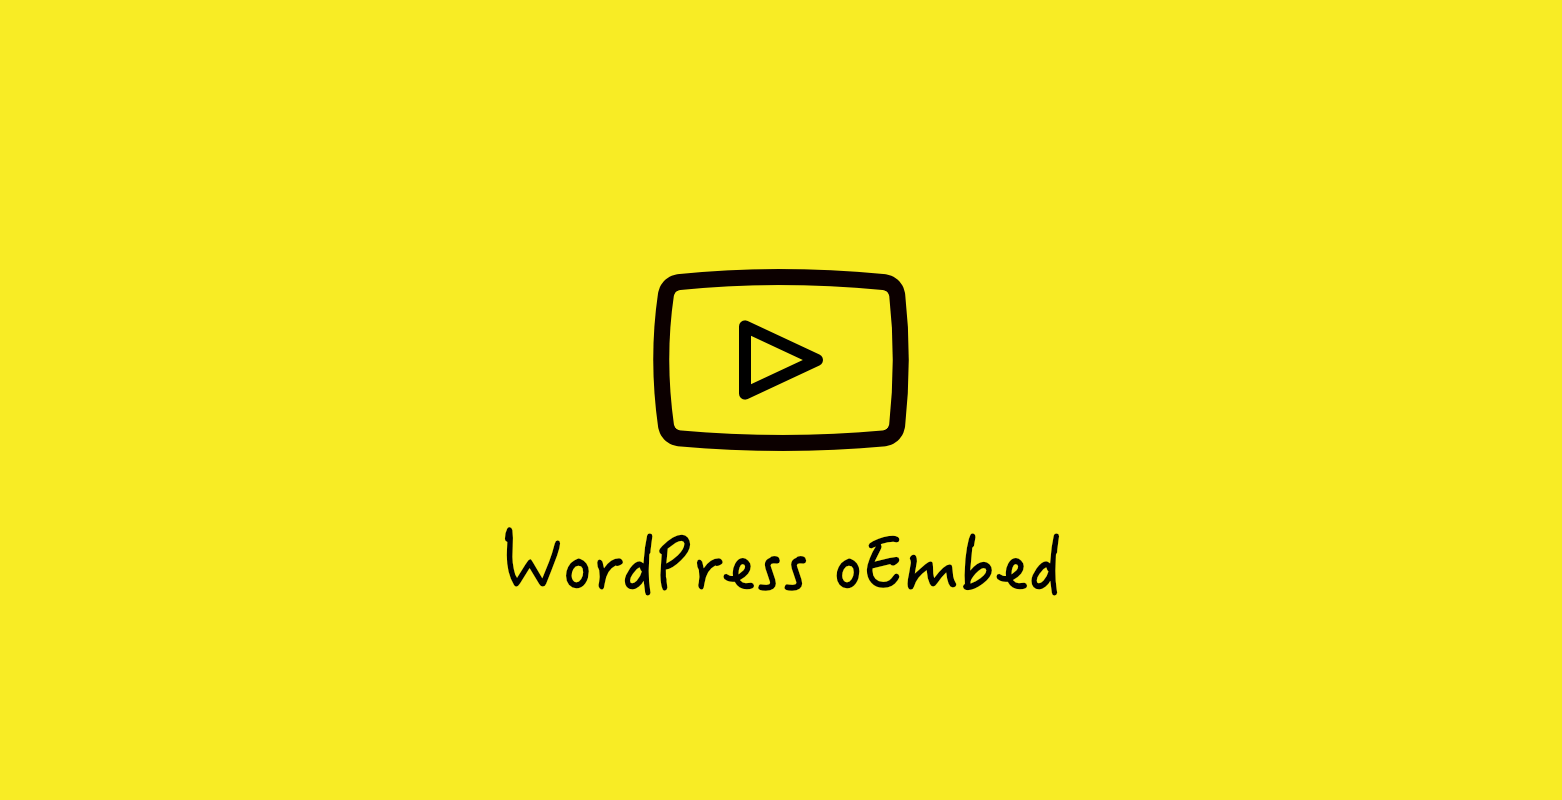 wordpress-oembed-youtube